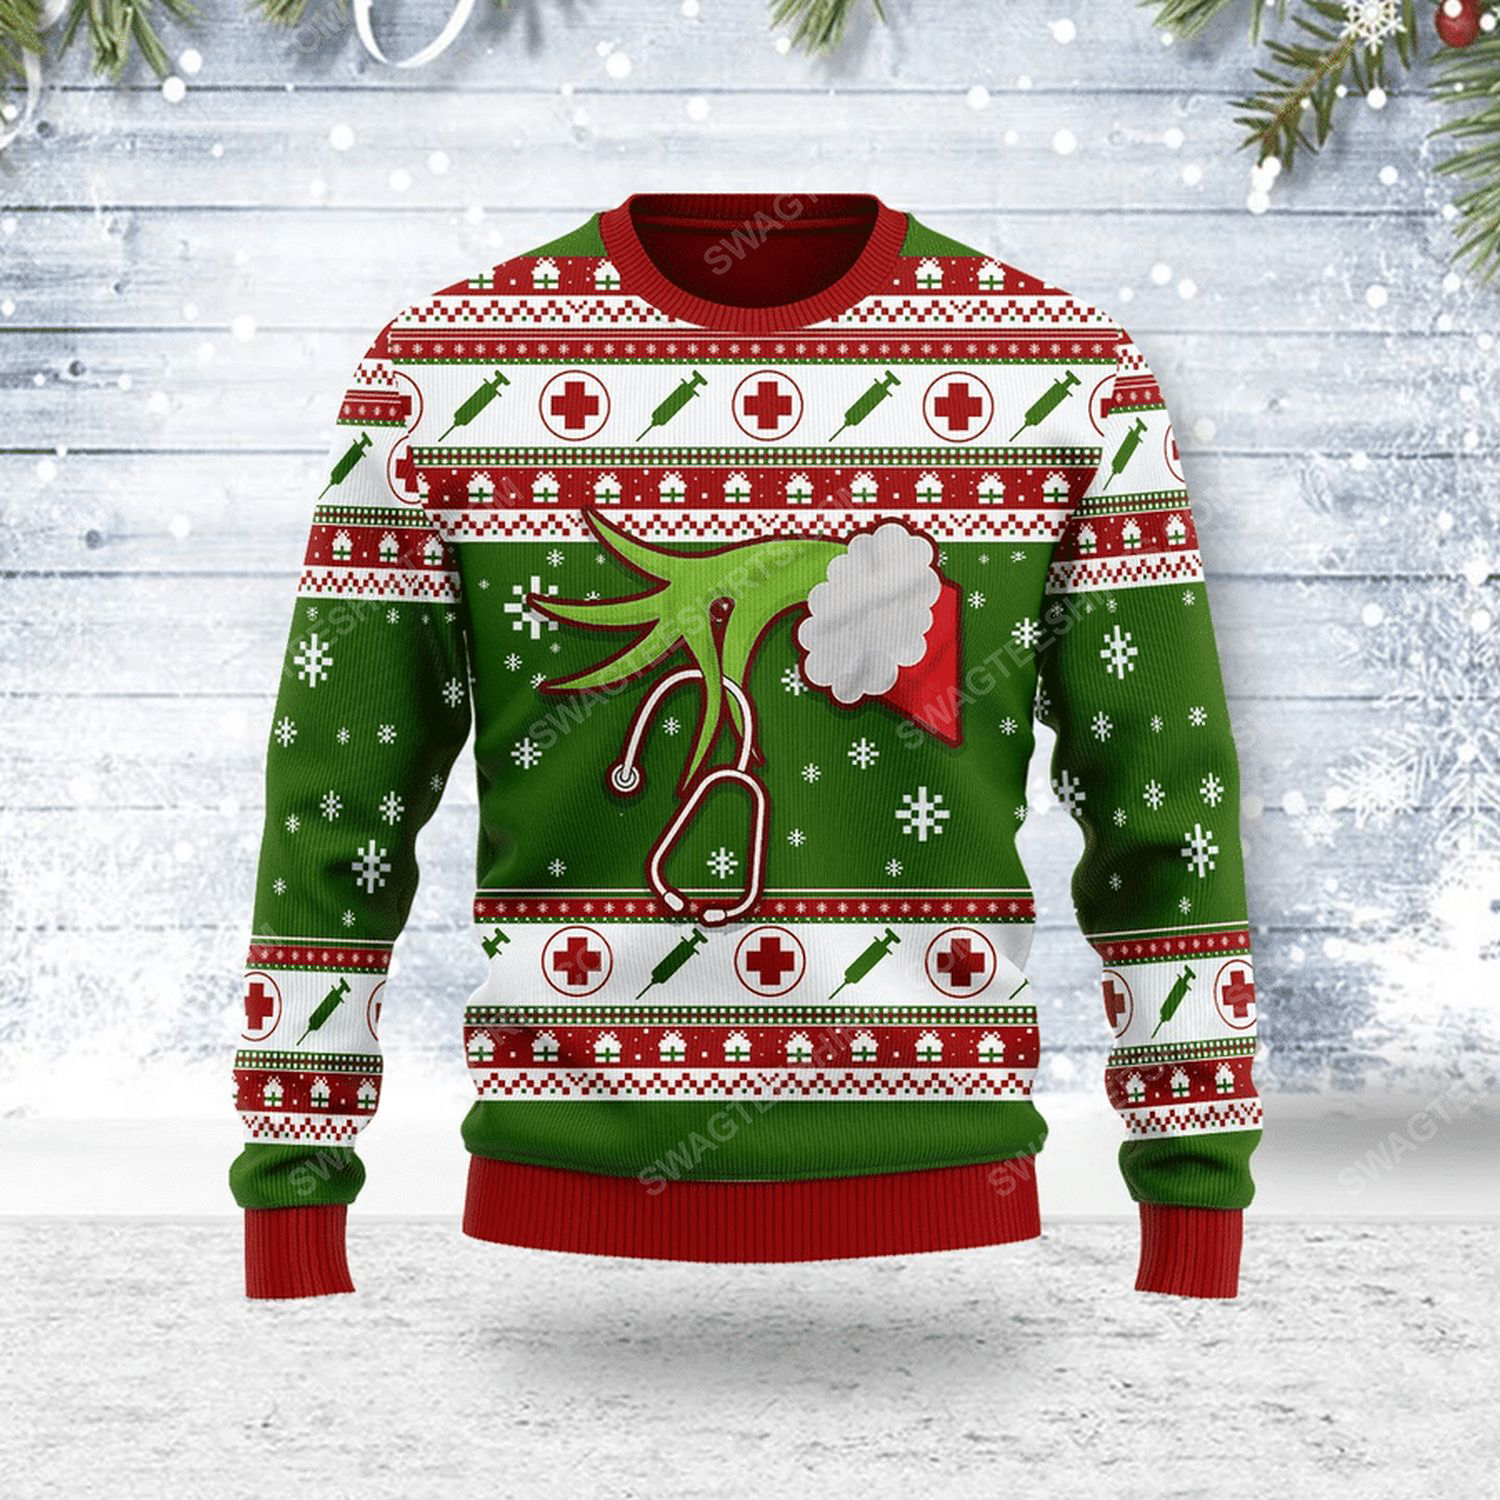 The grinch nurse ugly christmas sweater